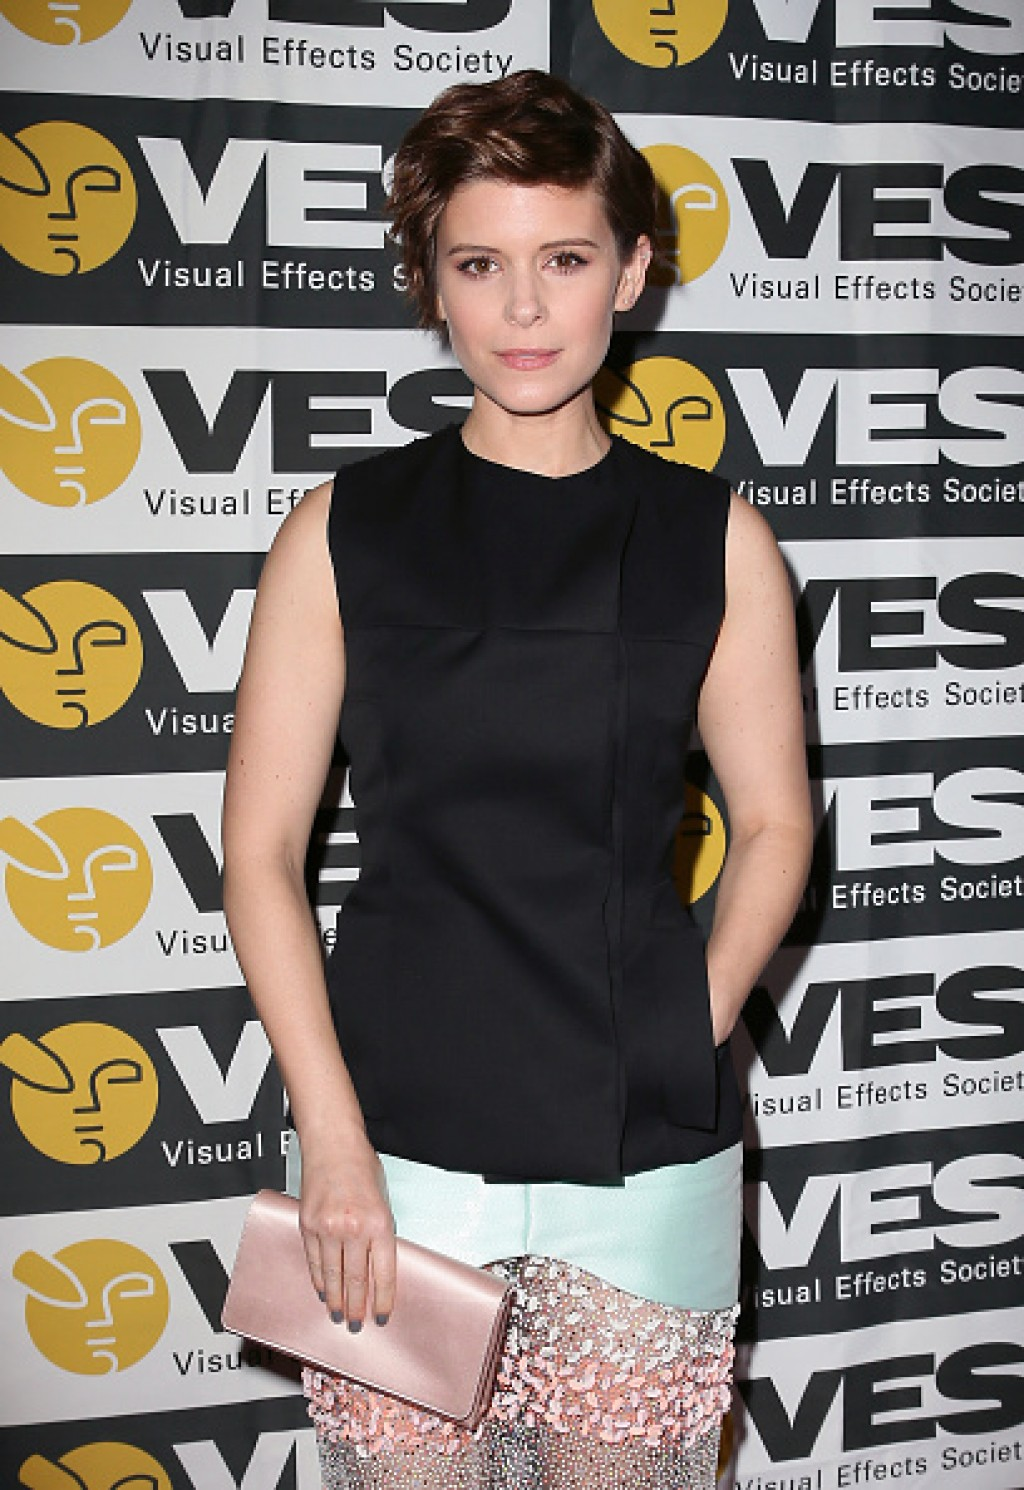 2016-VES-Awards-Kate-Mara-Details-1024x1490